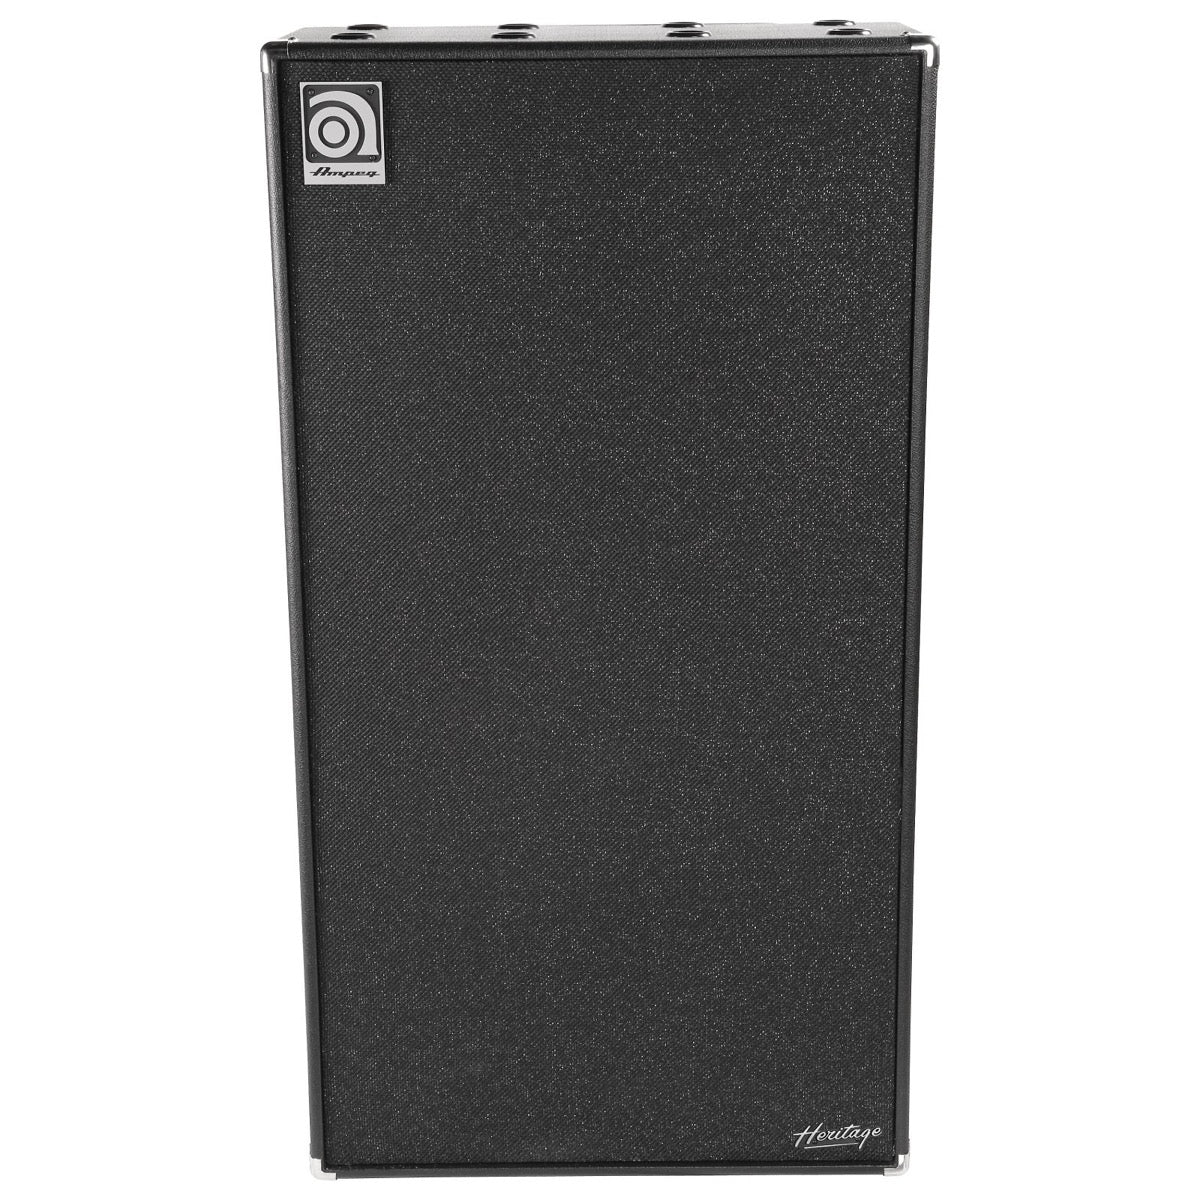 Ampeg Heritage SVT-810E Bass Cabinet (2x400 Watts, 8x10 Inch)